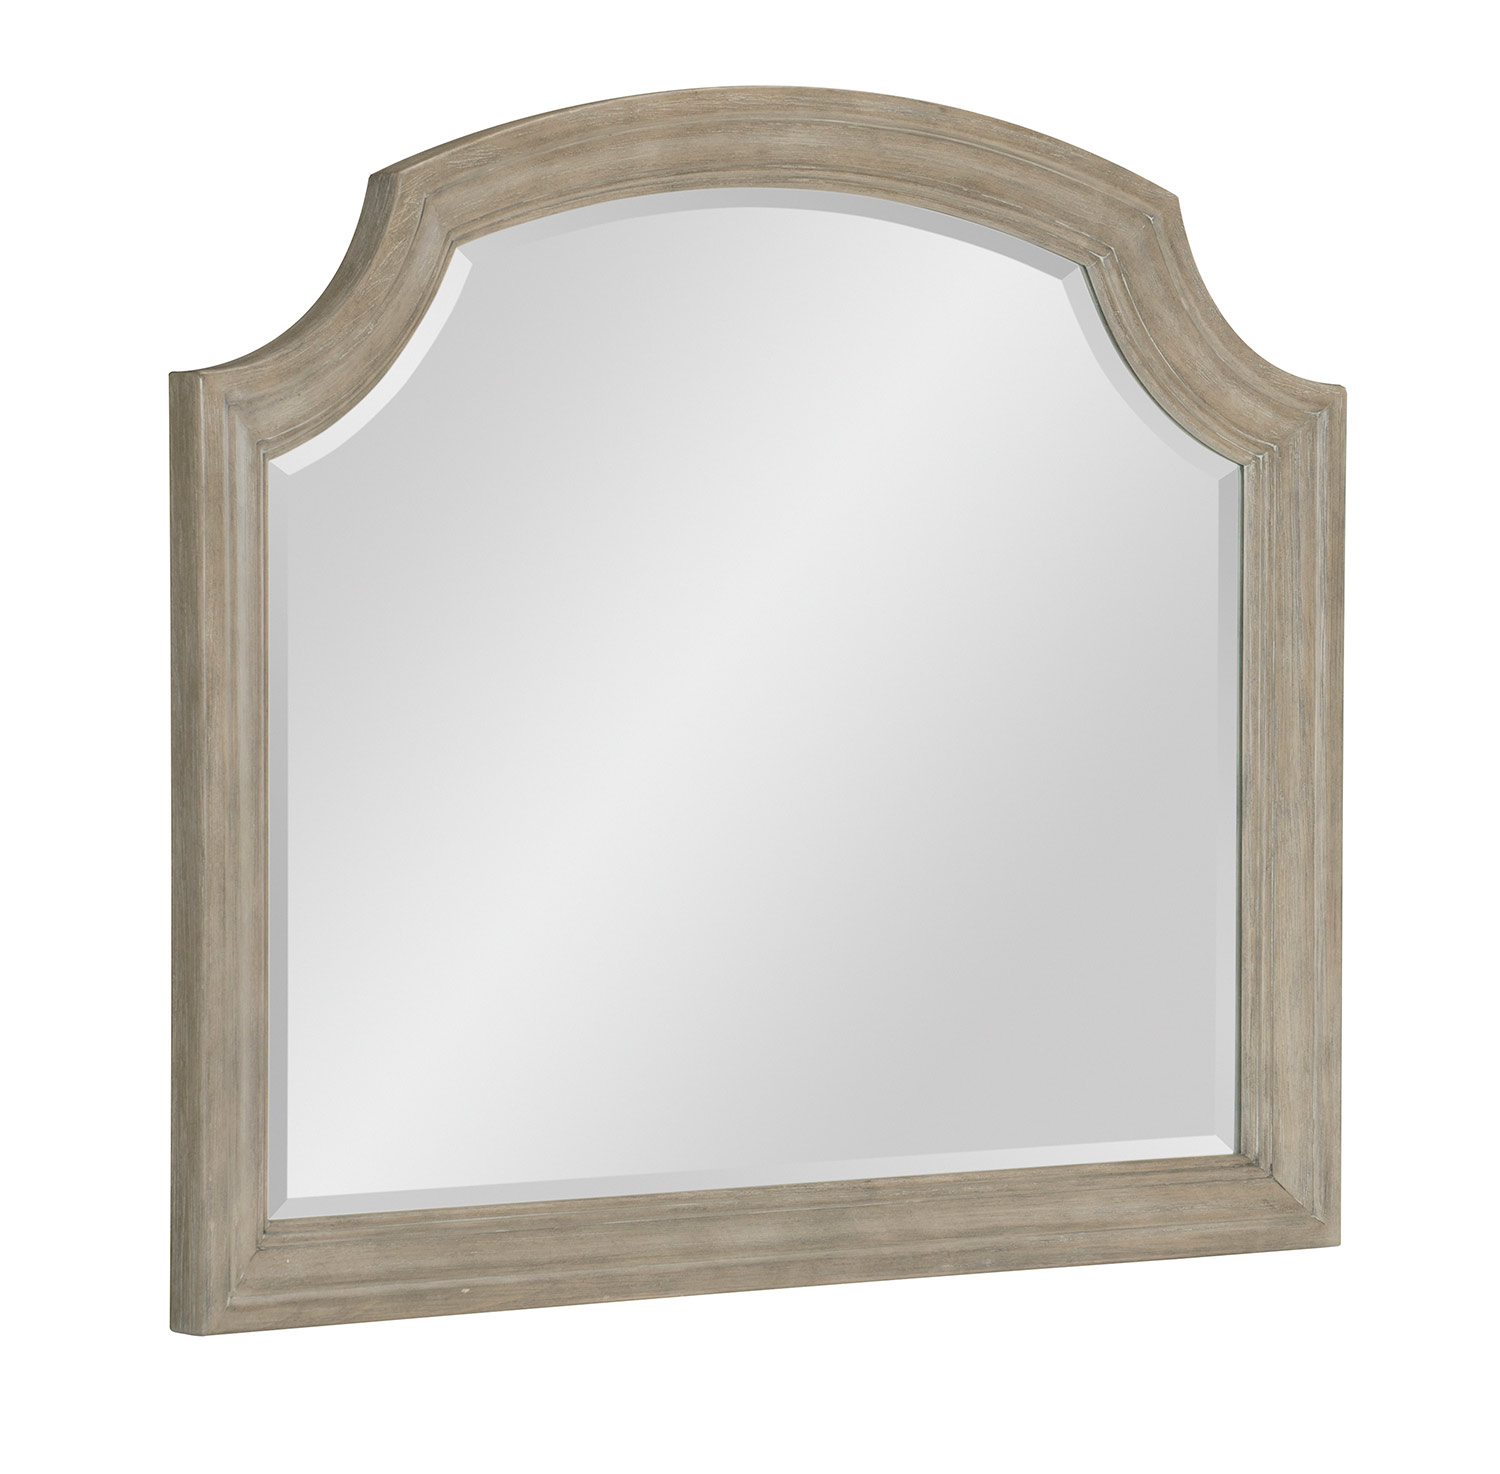 Homelegance Grayling Downs Mirror - Driftwood Gray